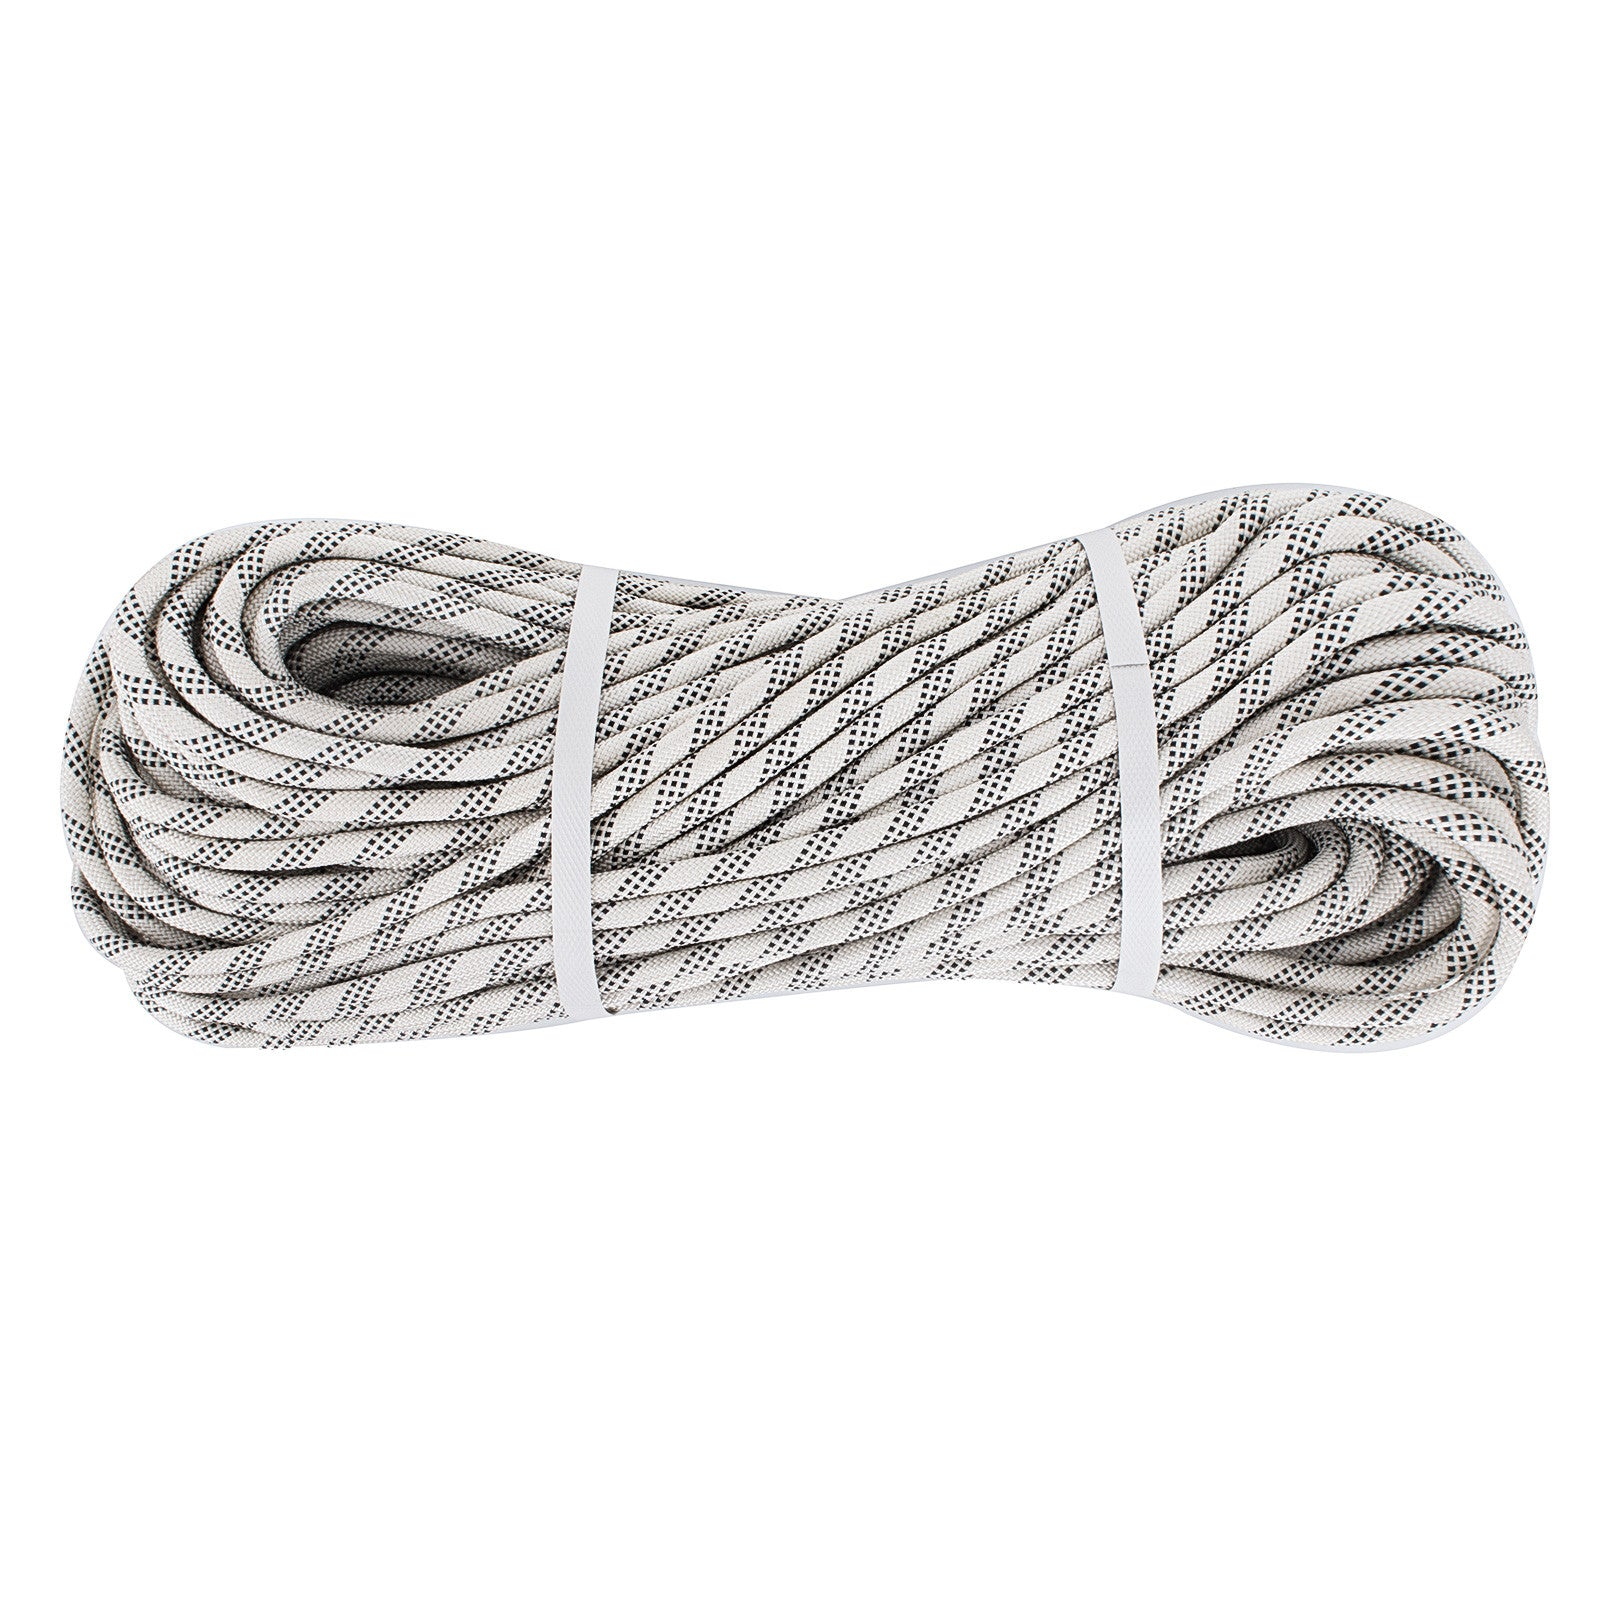 Dynamic Climbing Rope Nylon 35m 9.5mm Climbing White With Black